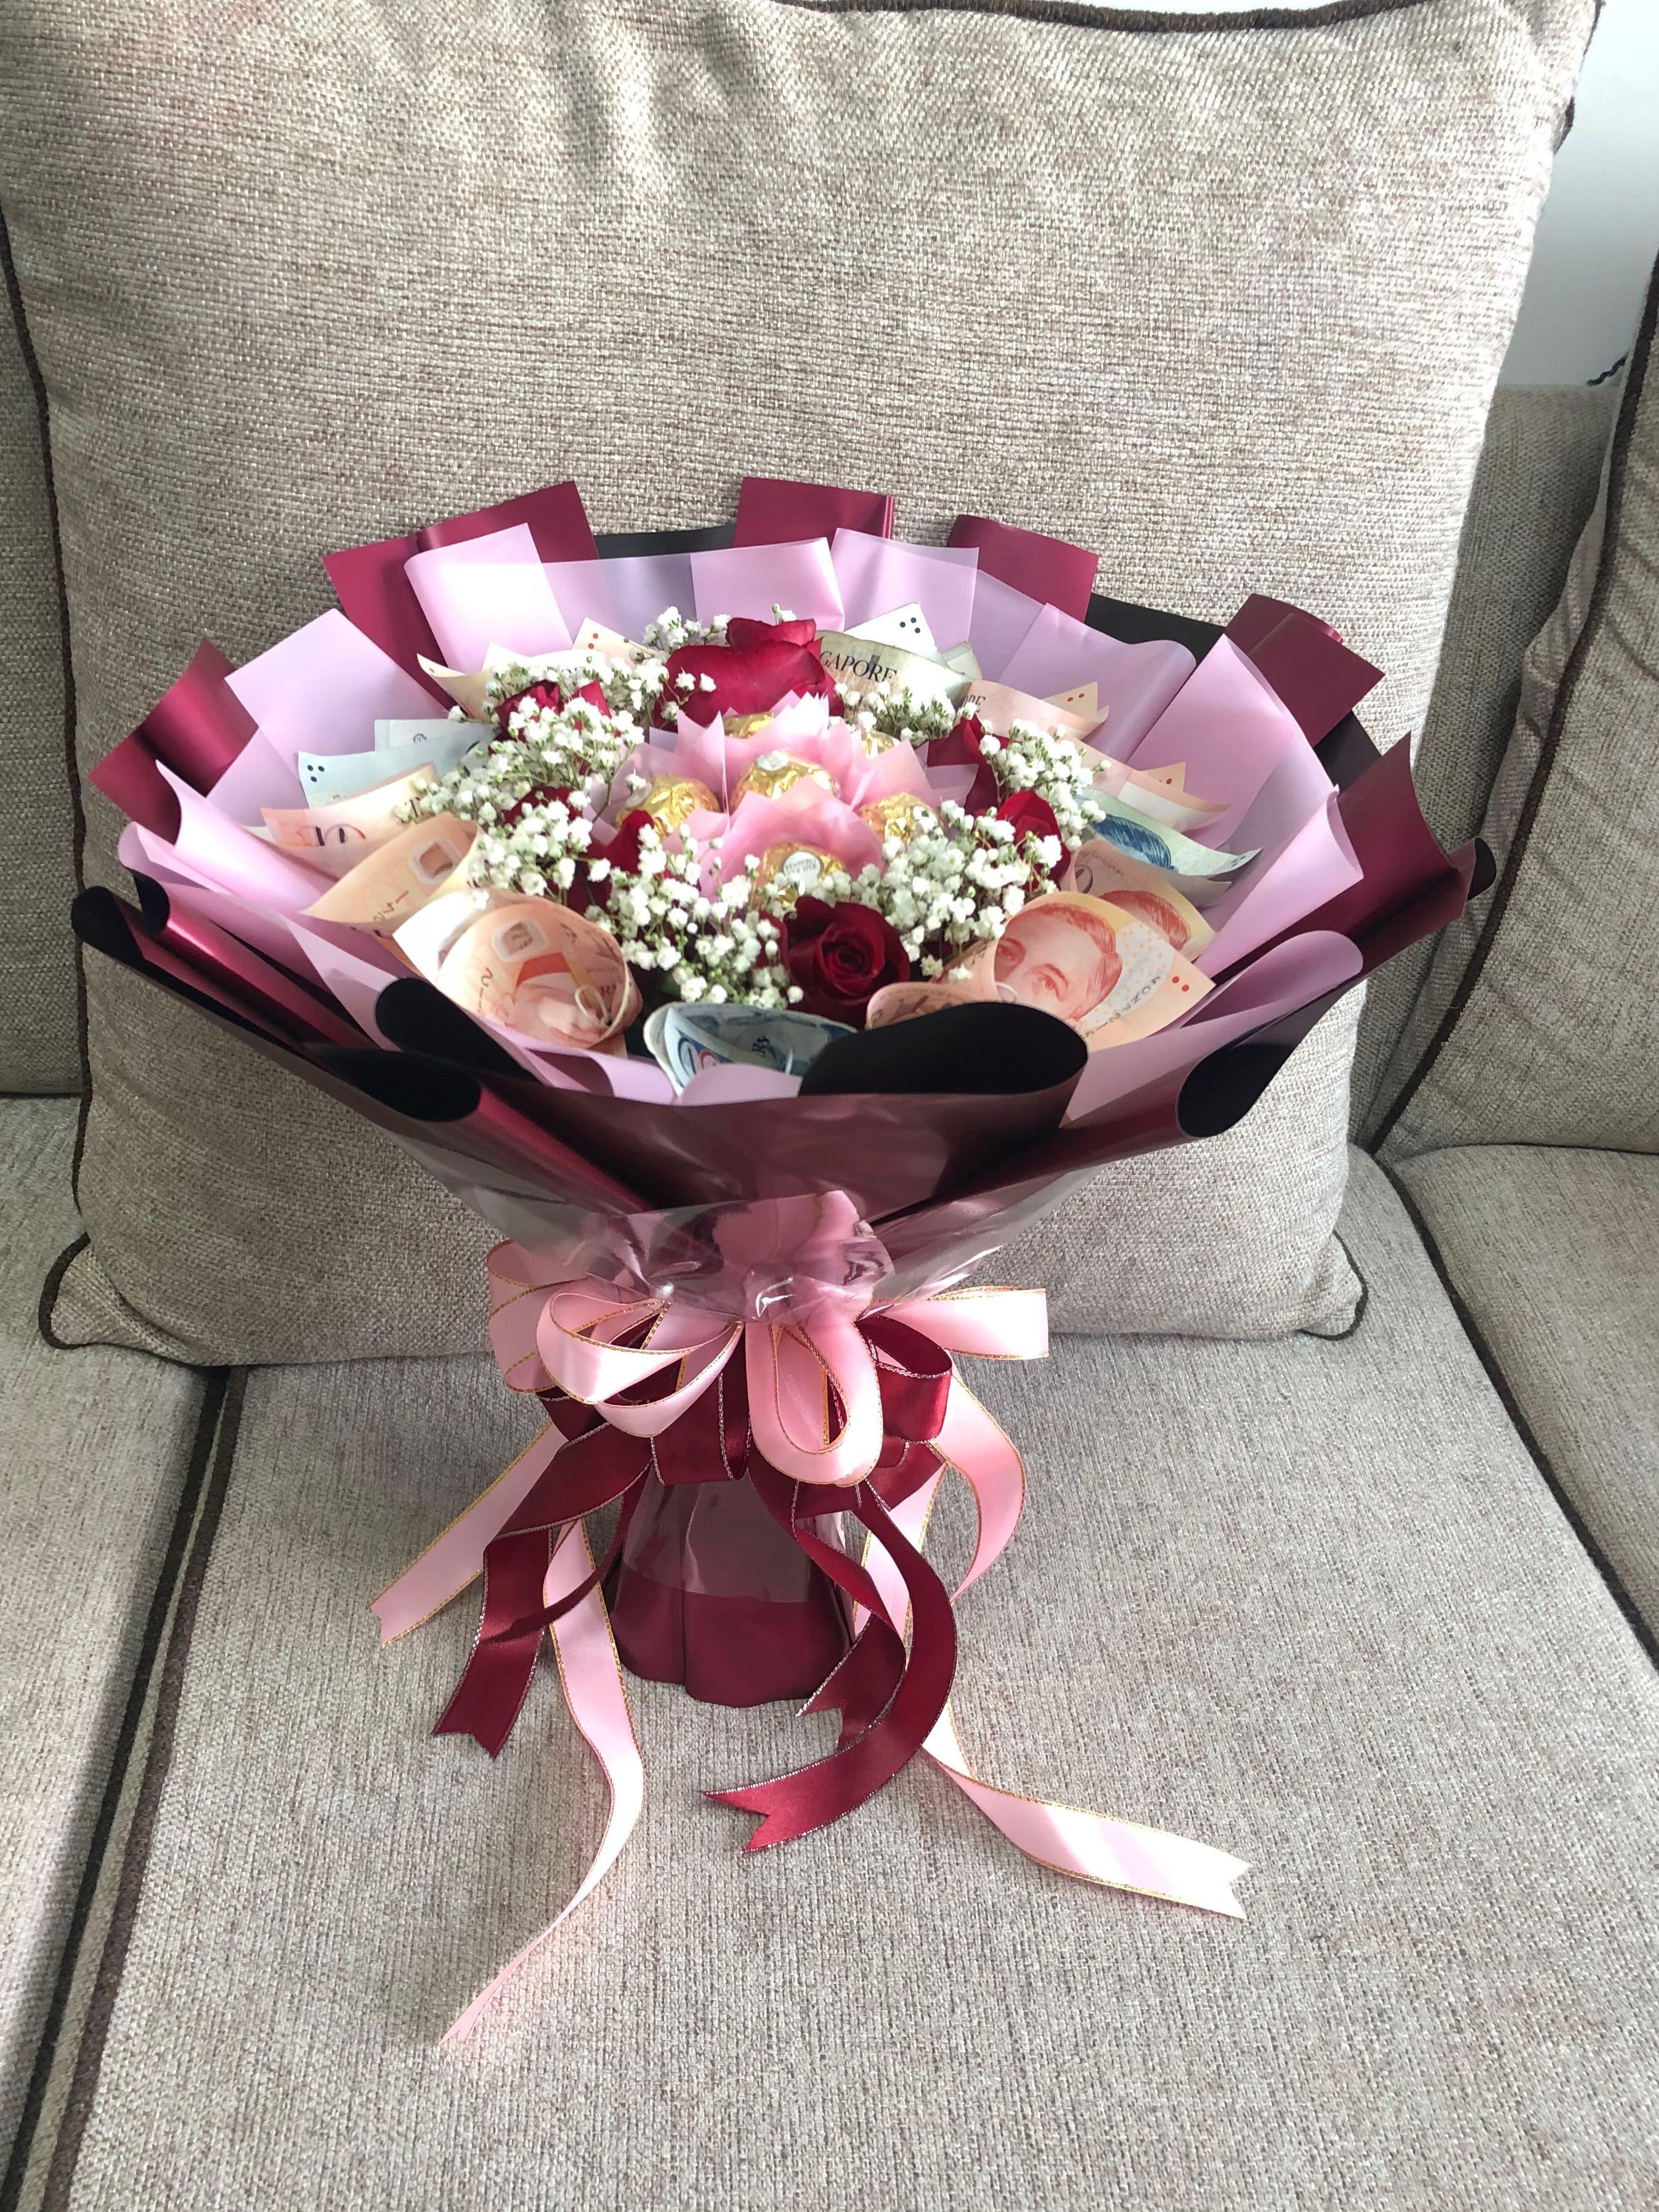 Rose Money Bouquet Gardening Flowers Bouquets On Carousell